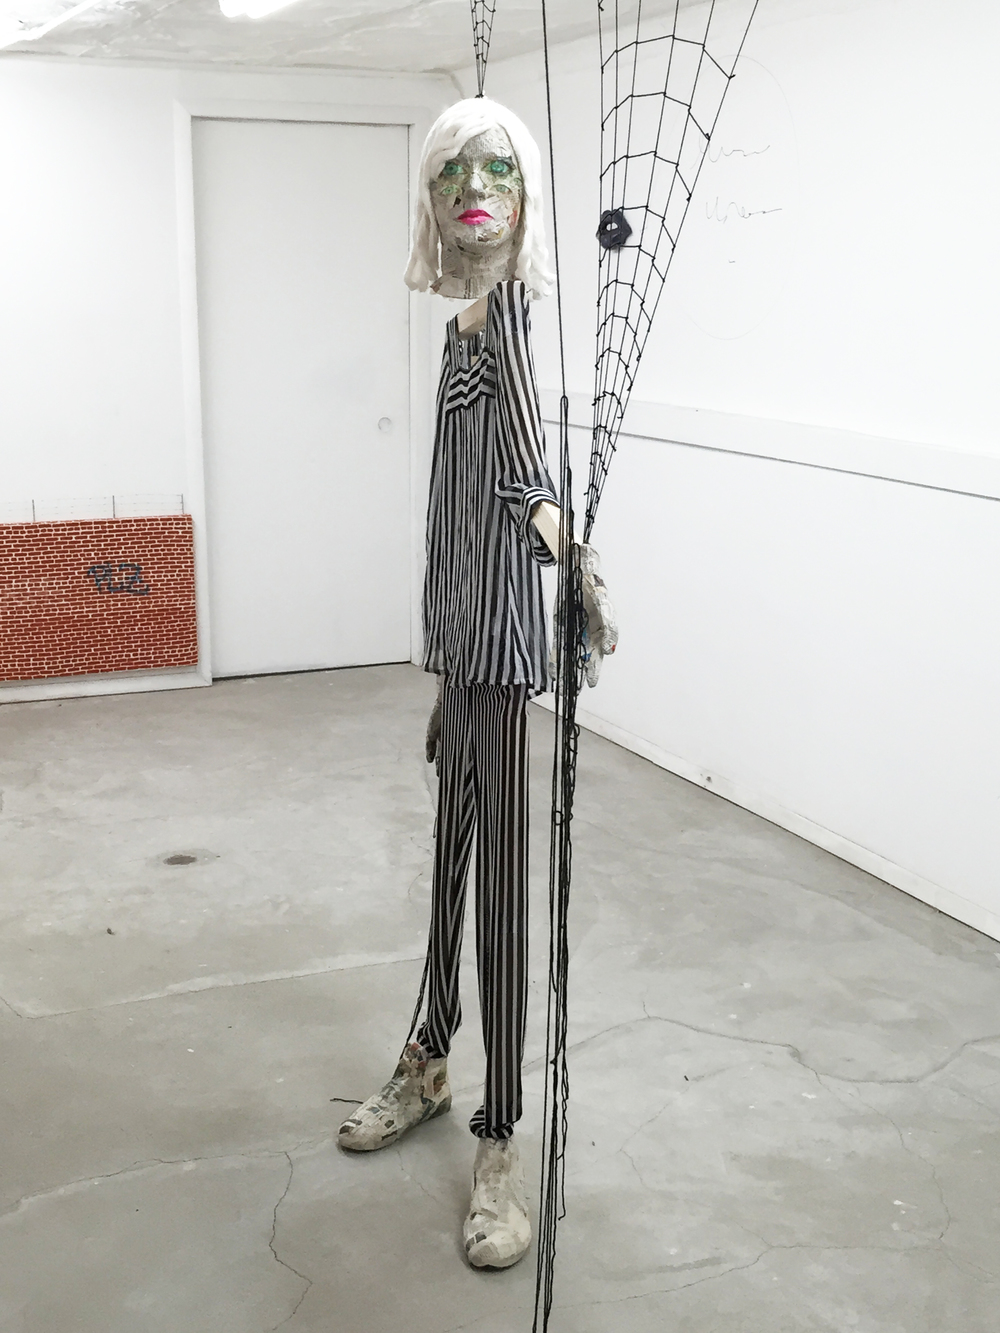 Liz Craft,  Spider Woman , 2013, paper mache, yarn, clothing, wood, dimensions variable